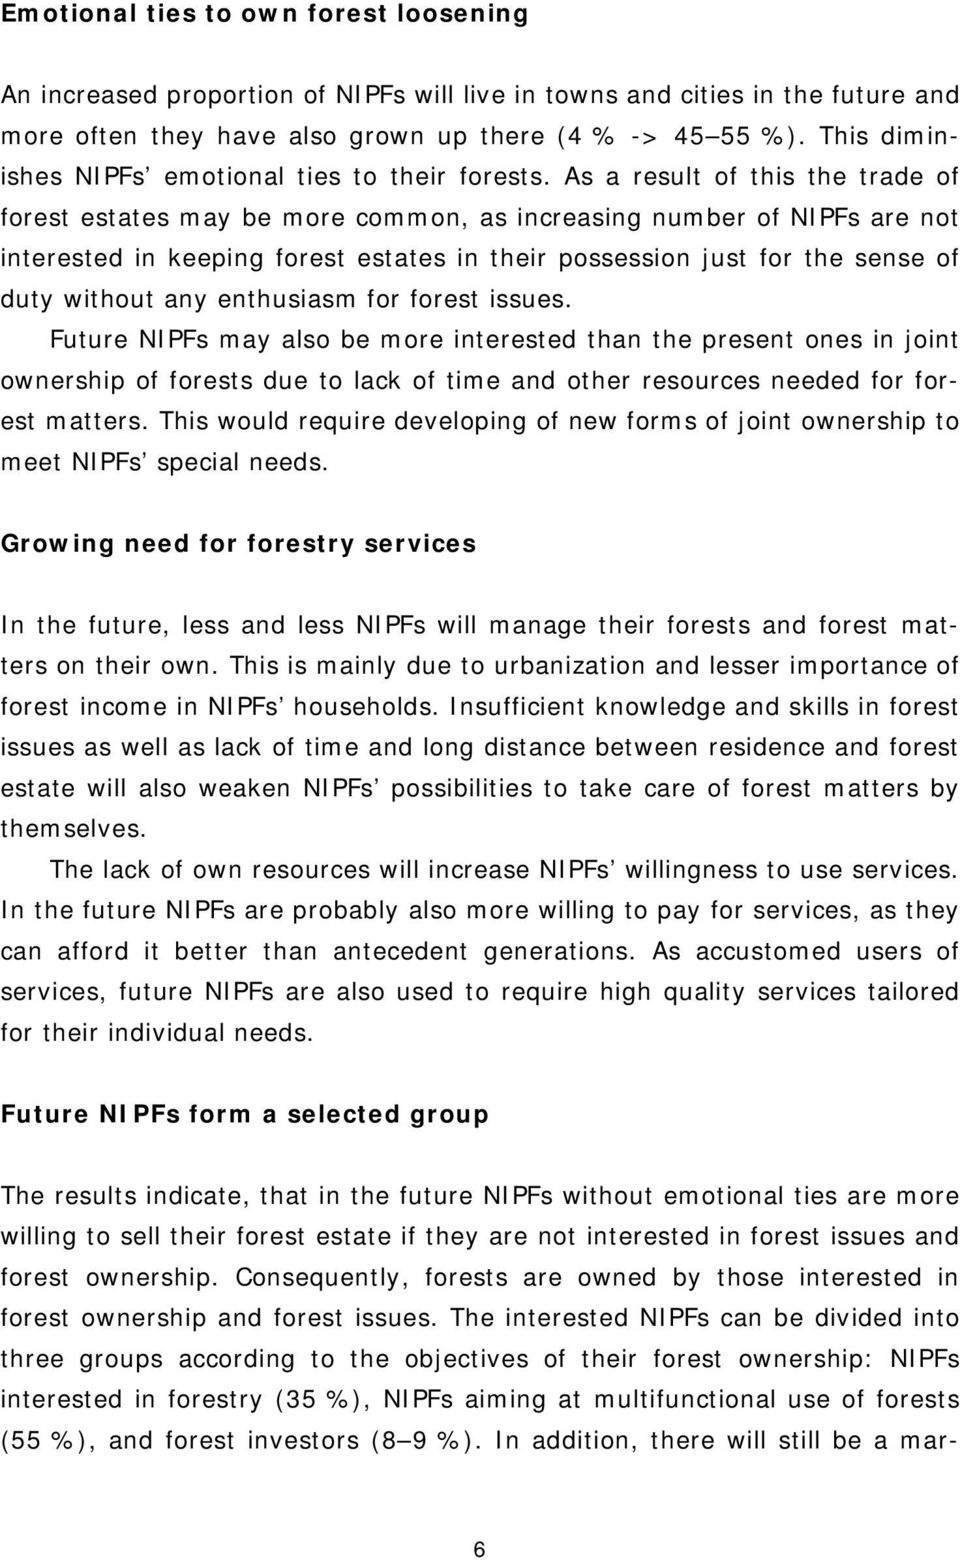 As a result of this the trade of forest estates may be more common, as increasing number of NIPFs are not interested in keeping forest estates in their possession just for the sense of duty without